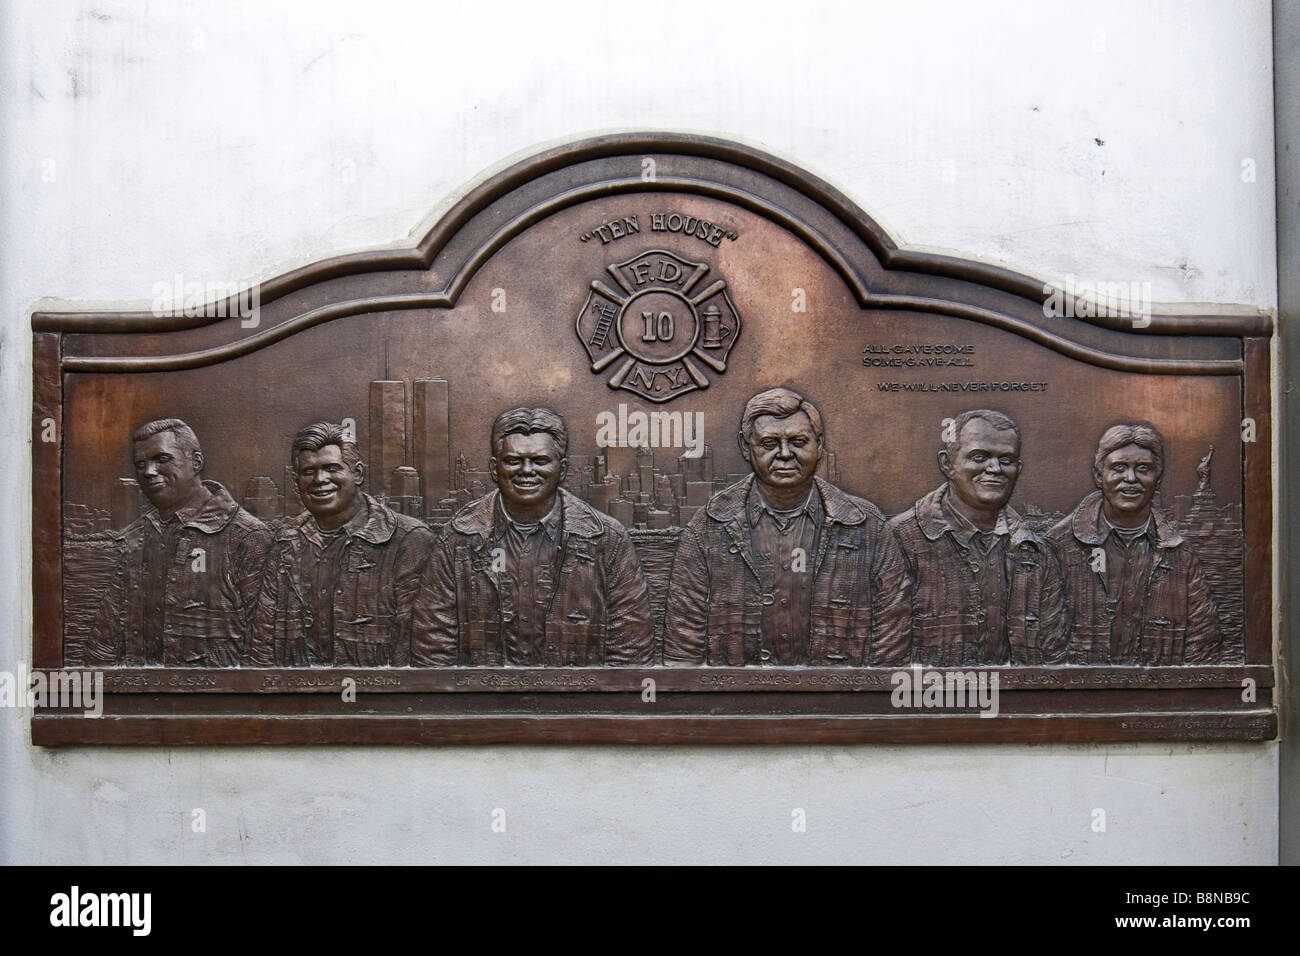 Brass plaque commemorating the fire fighters who lost their lives during the 9/11 disaster - Stock Image